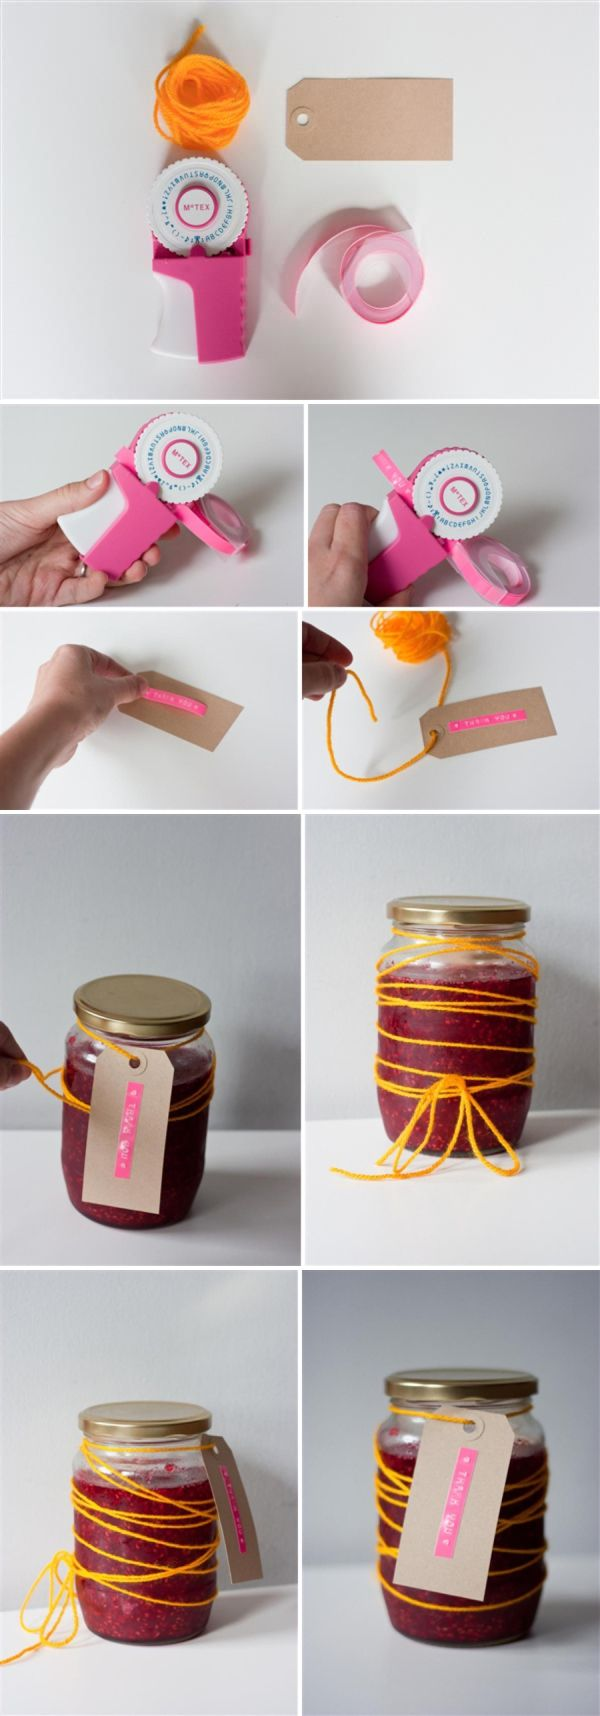 DIY Jam Wedding Favours | Jam wedding favors, Wedding favours uk and ...